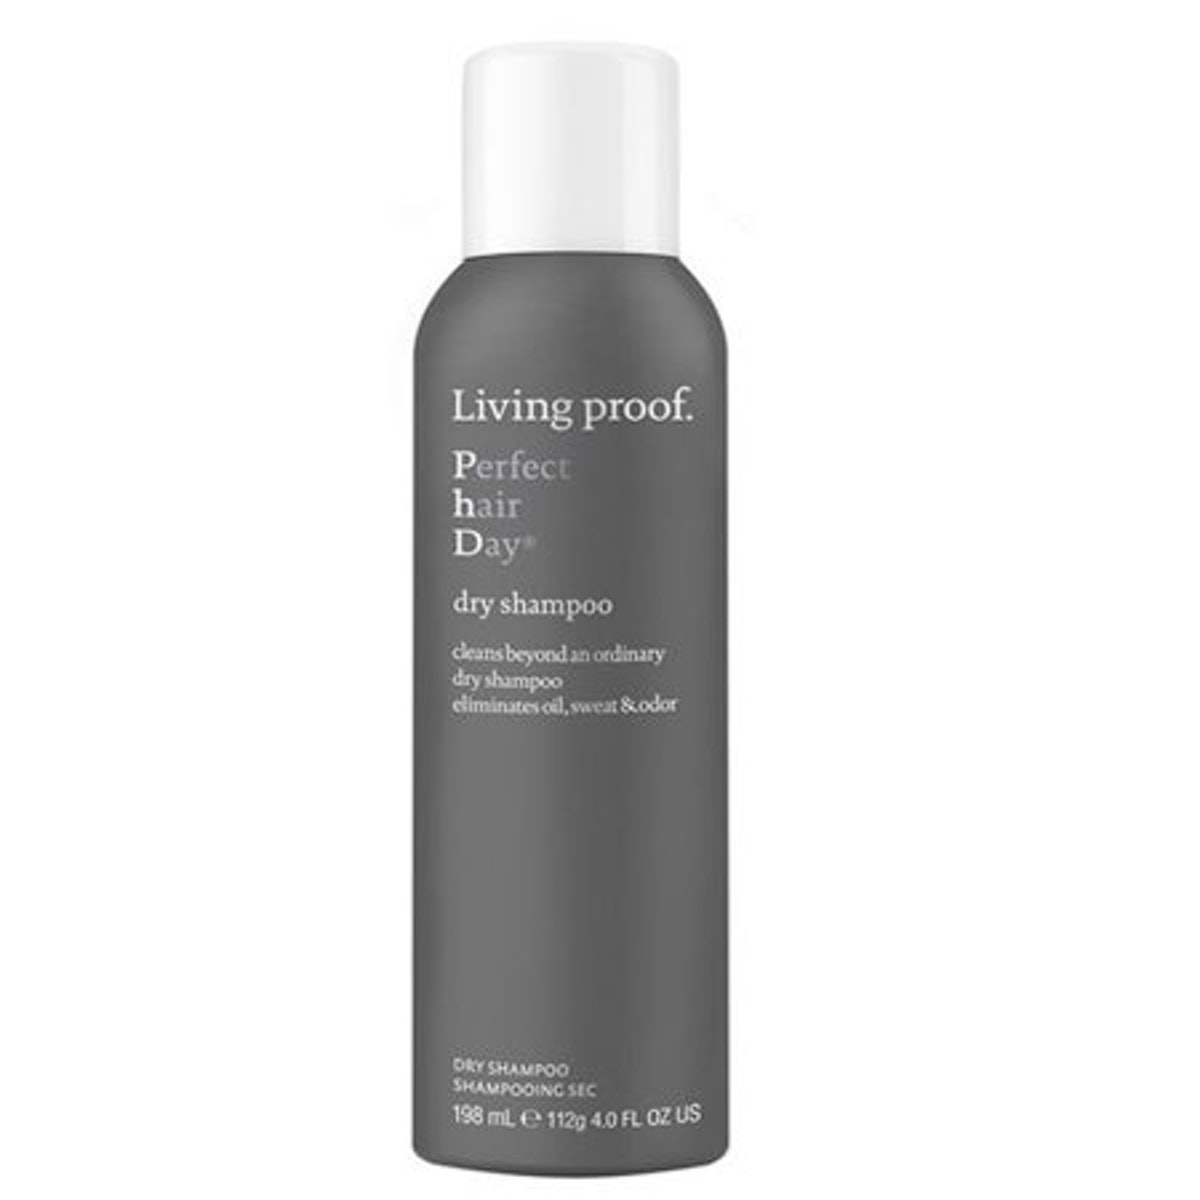 Living Proof Perfect Hair Day Dry Shampoo, 4 Oz